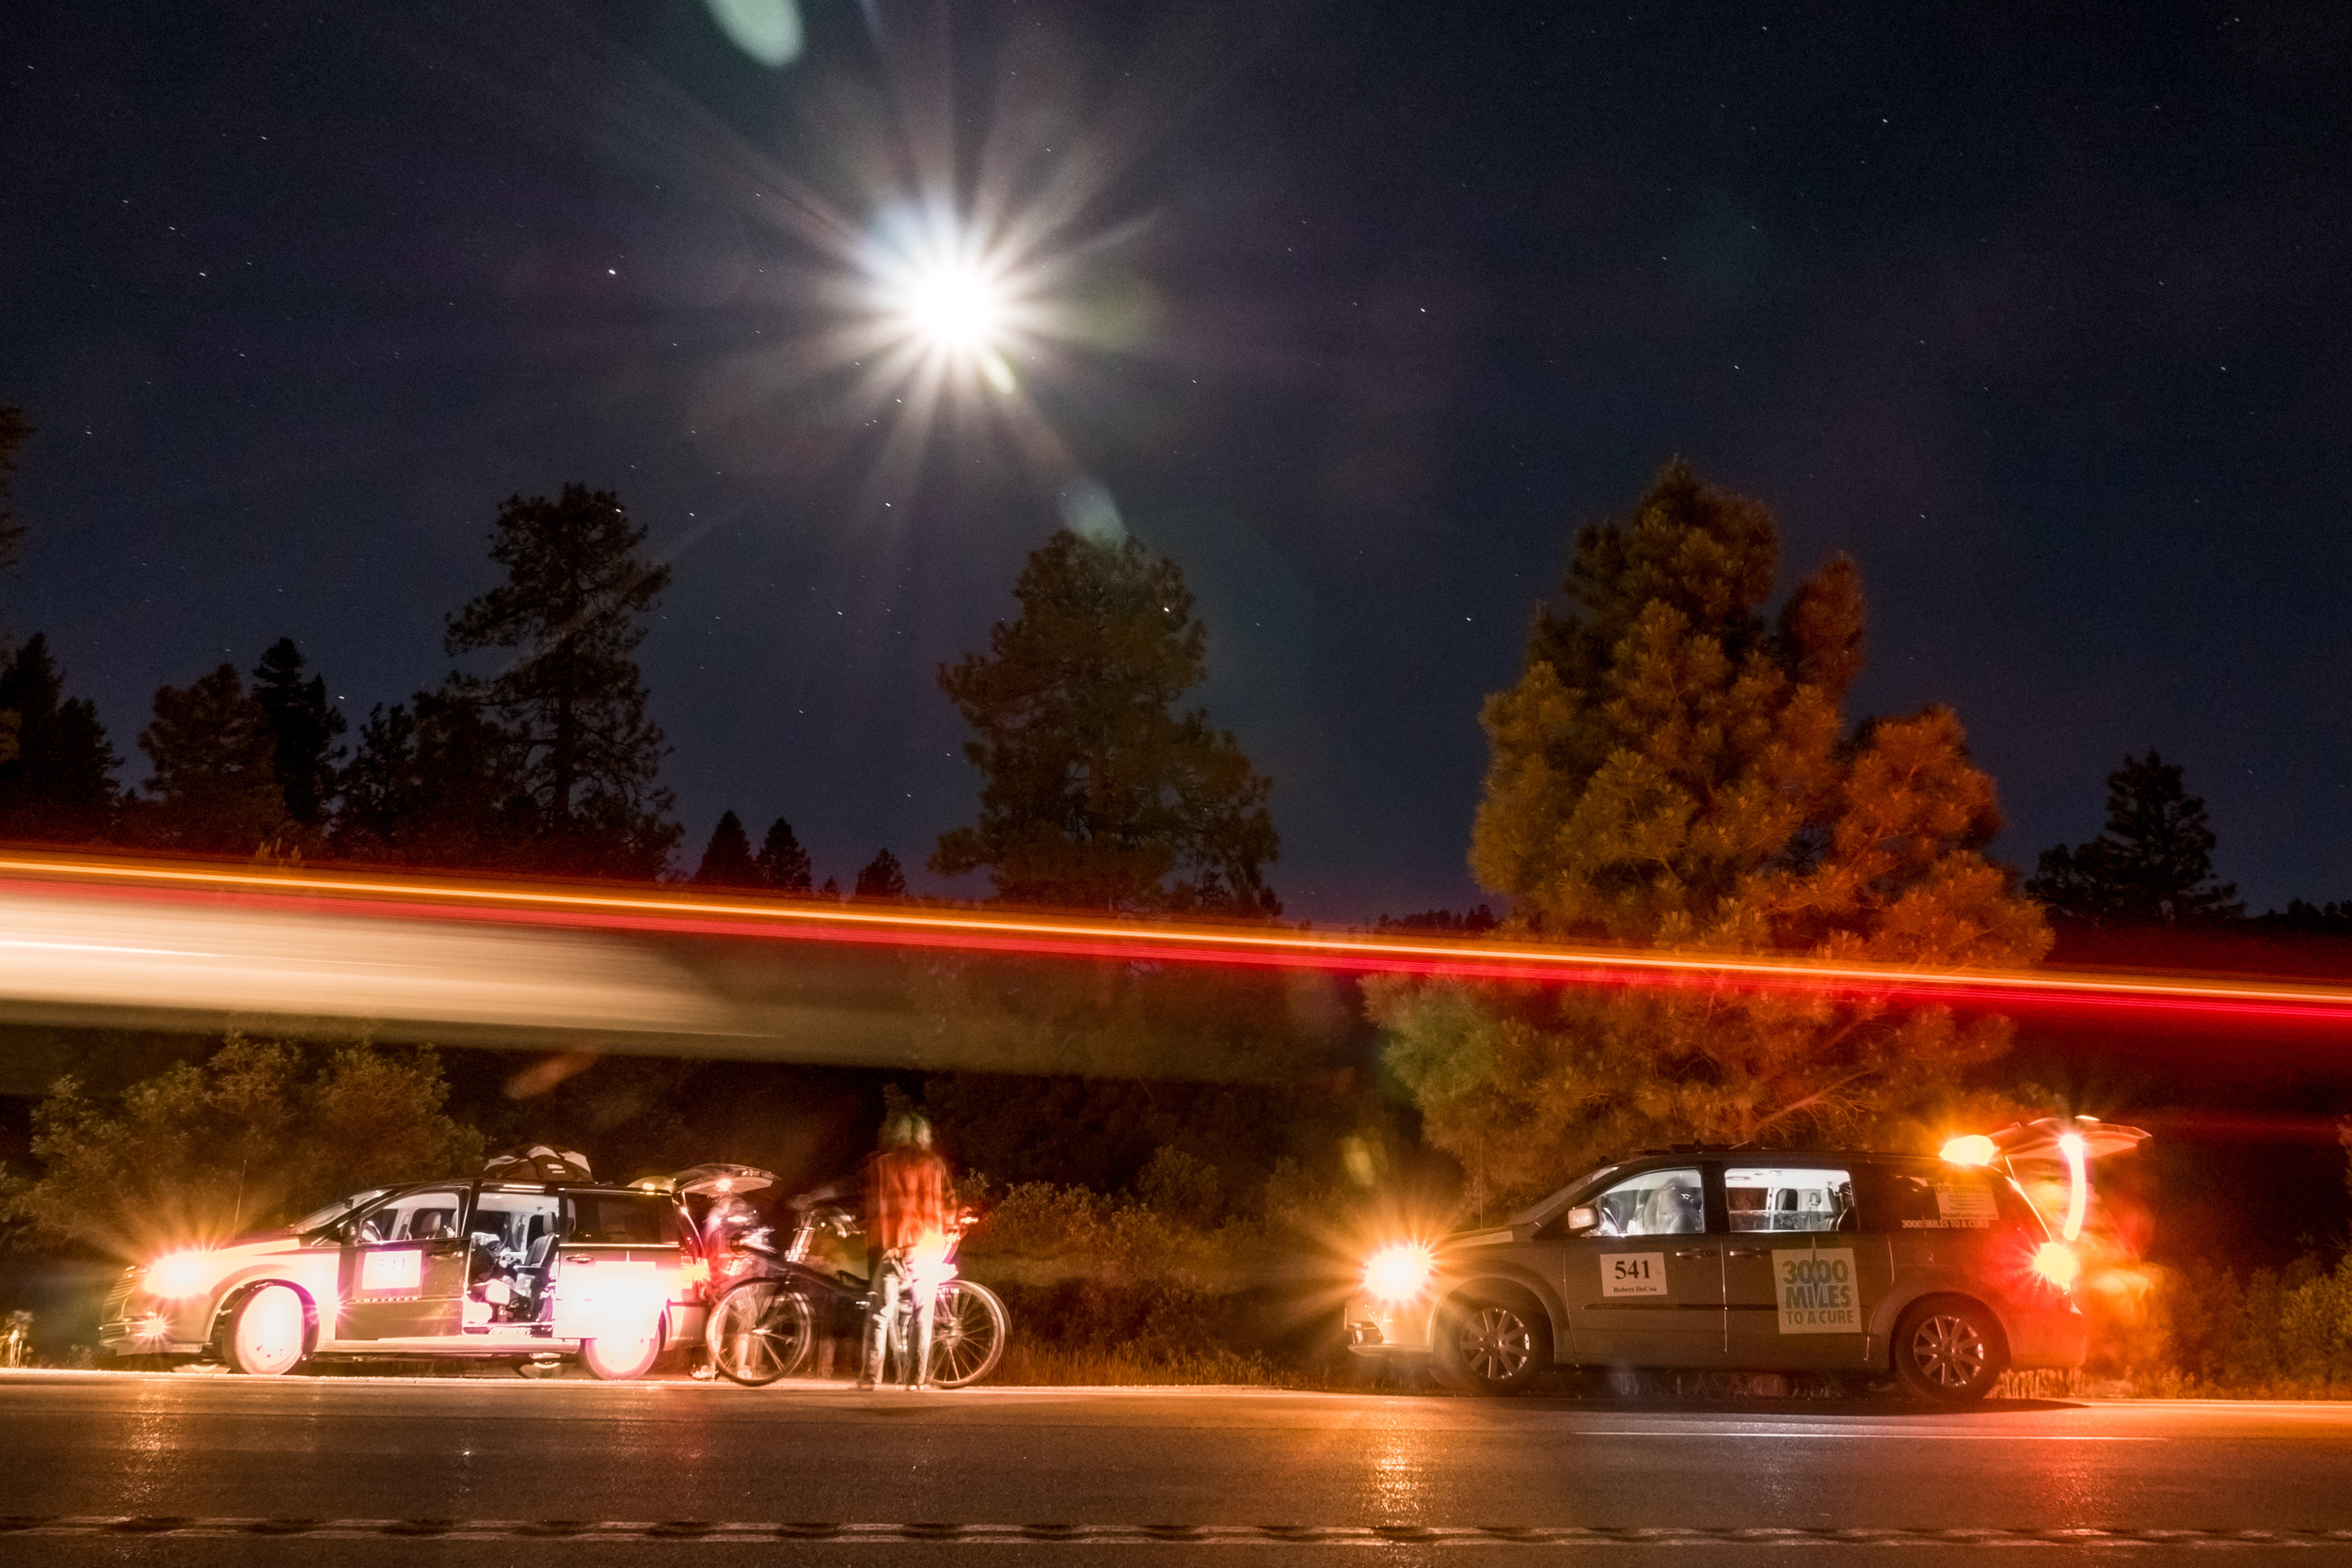 """""""Night's are hard and that's when the exhaustion really sets in,"""" said Rob. The Race Across America involves pedaling through the day and the night. There's a bit of chaos in the nighttime. The follow vehicles blast music to wake Rob up, feed him loads of caffeine,and push him past his limits to keep him going."""